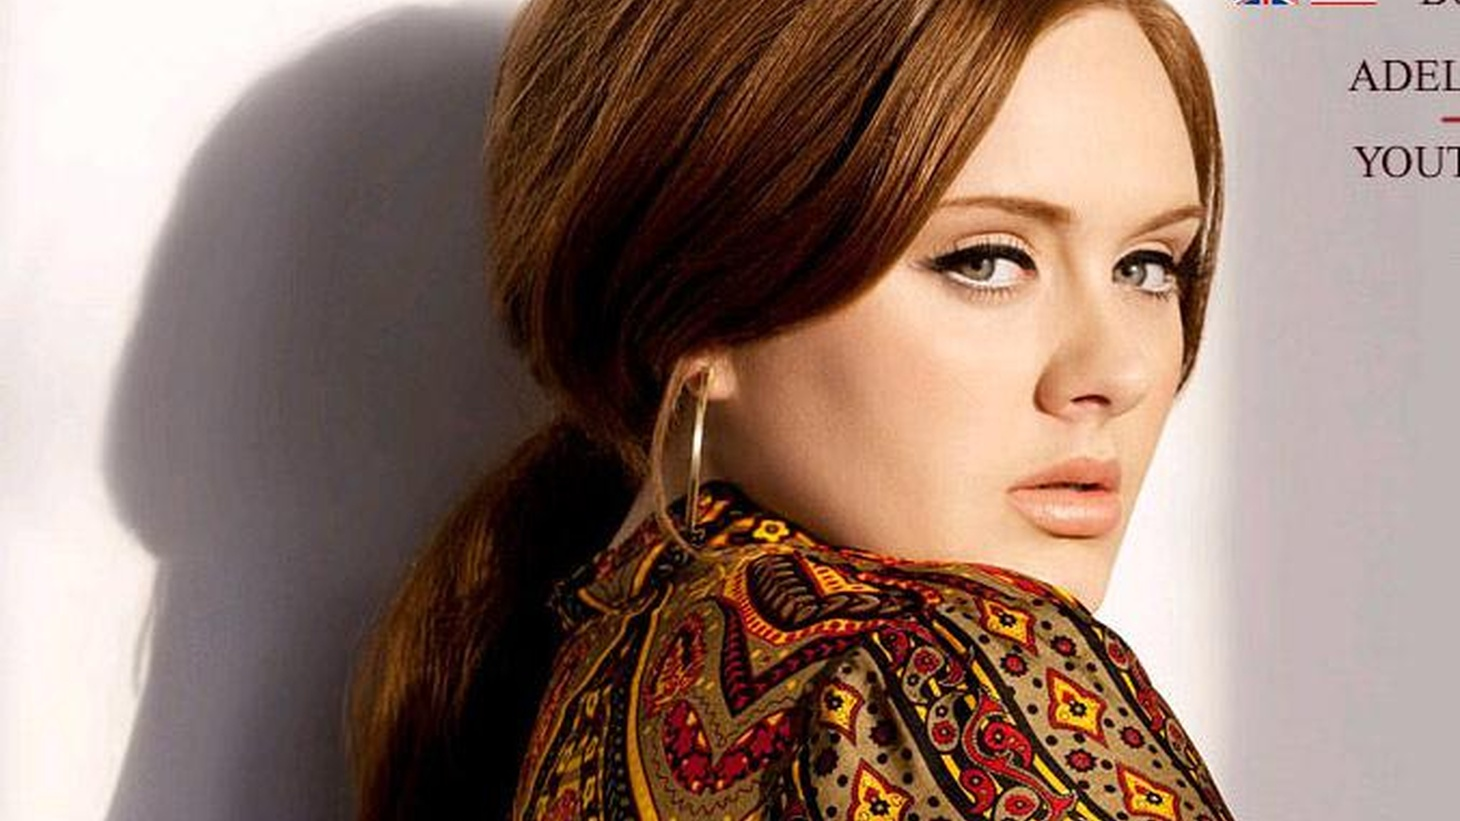 Adele drops by in the 10 o'clock hour for a guest DJ set.